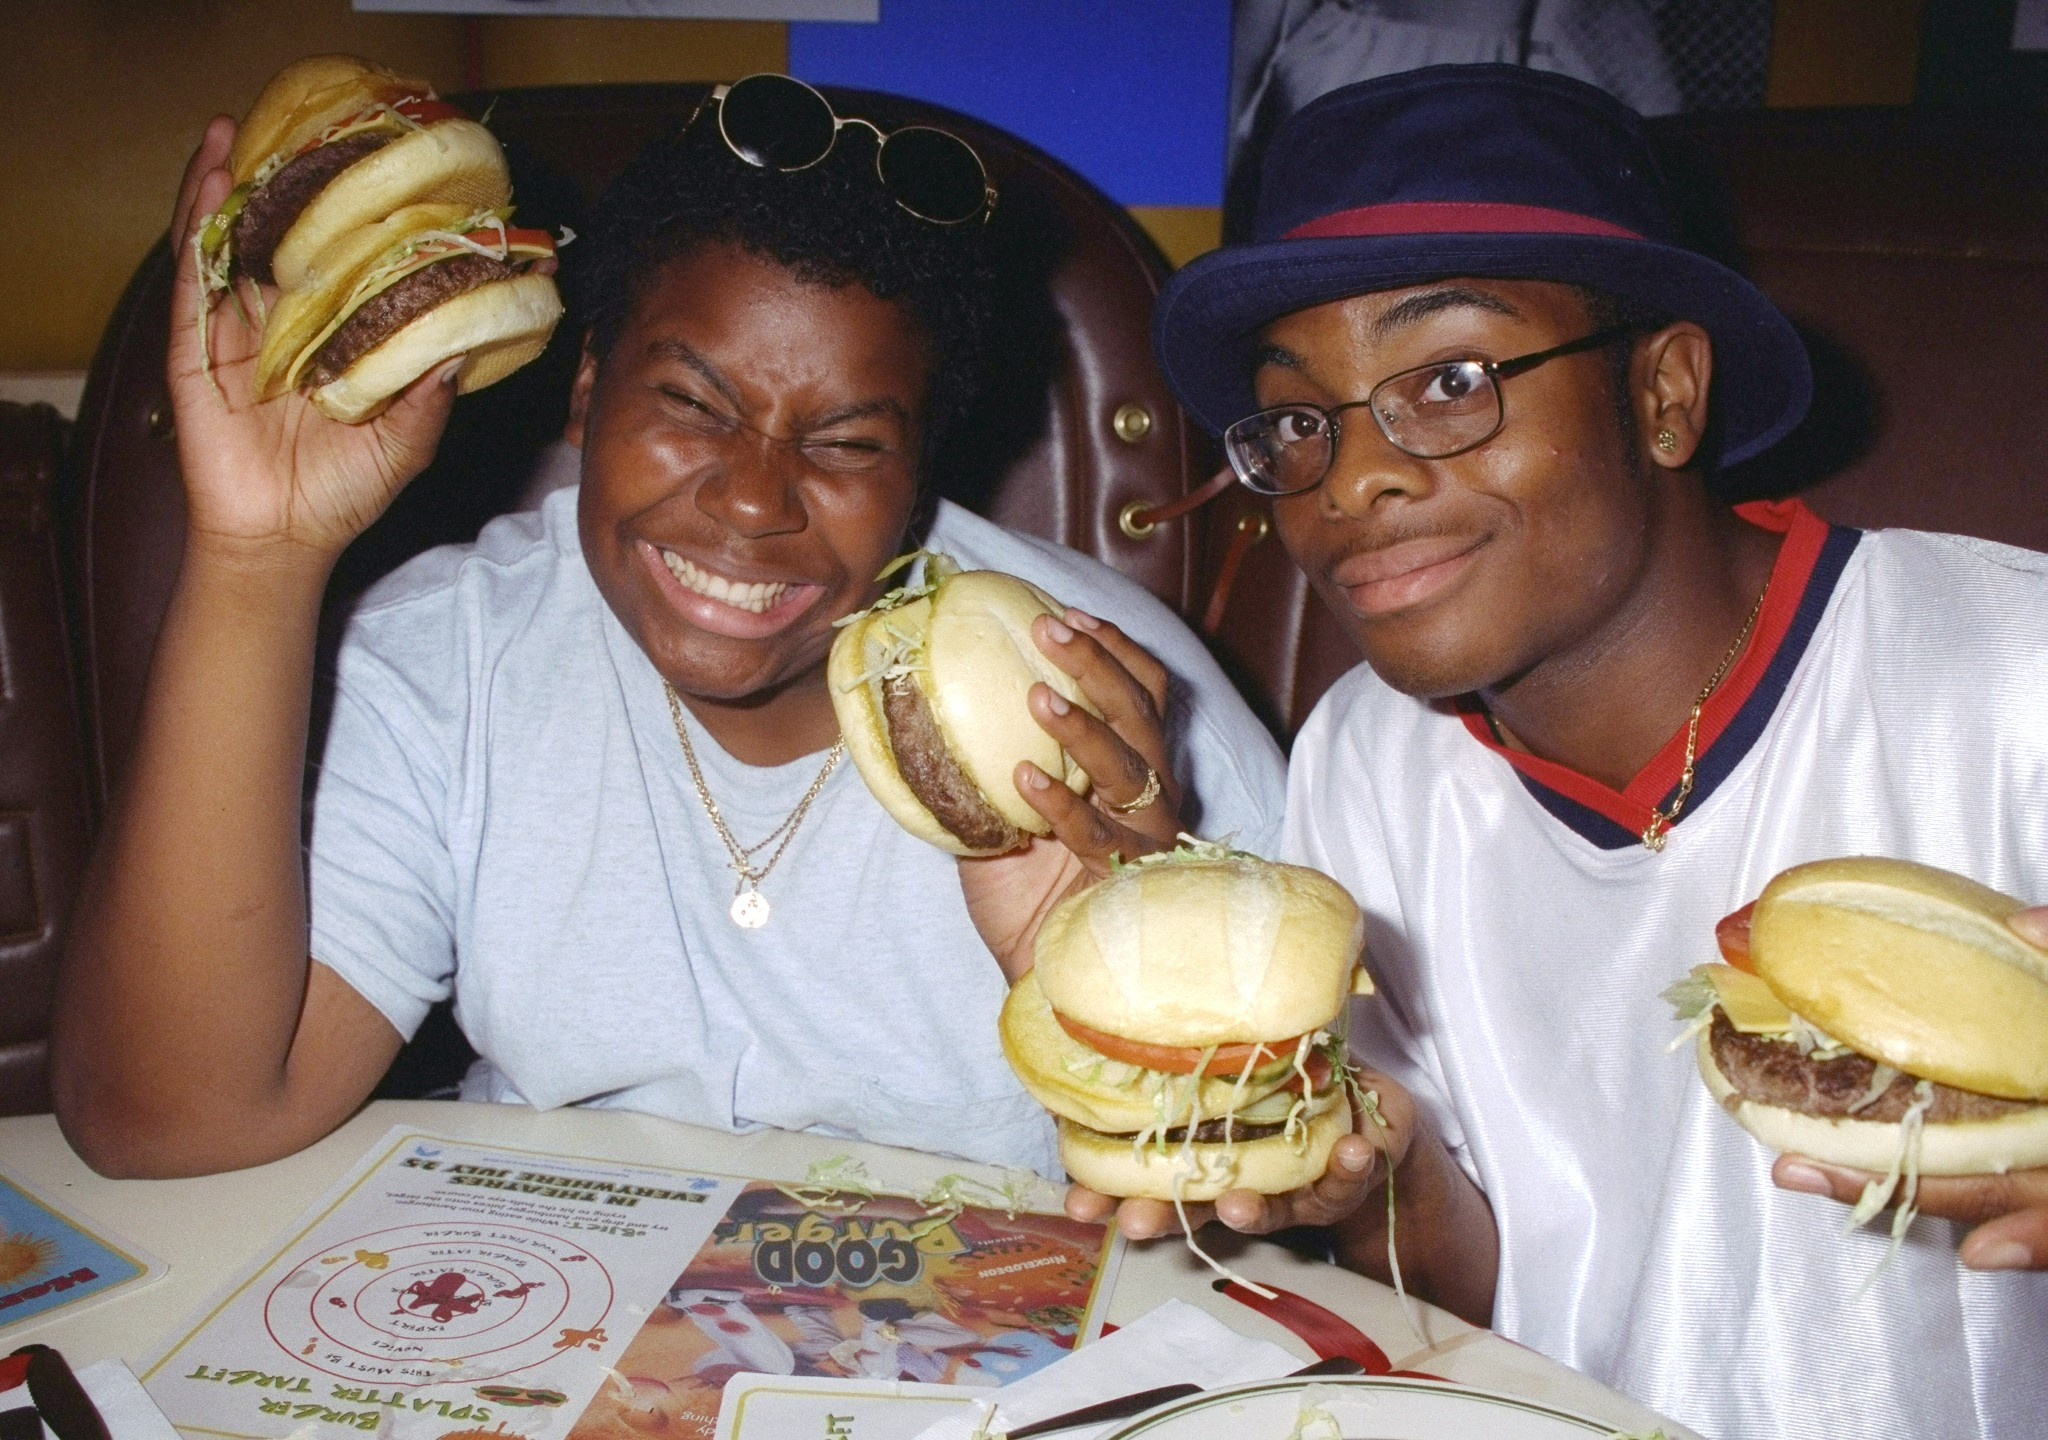 Chicago to Welcome a 'Good Burger' Pop-Up to Tap into Nickelodeon Nostalgia